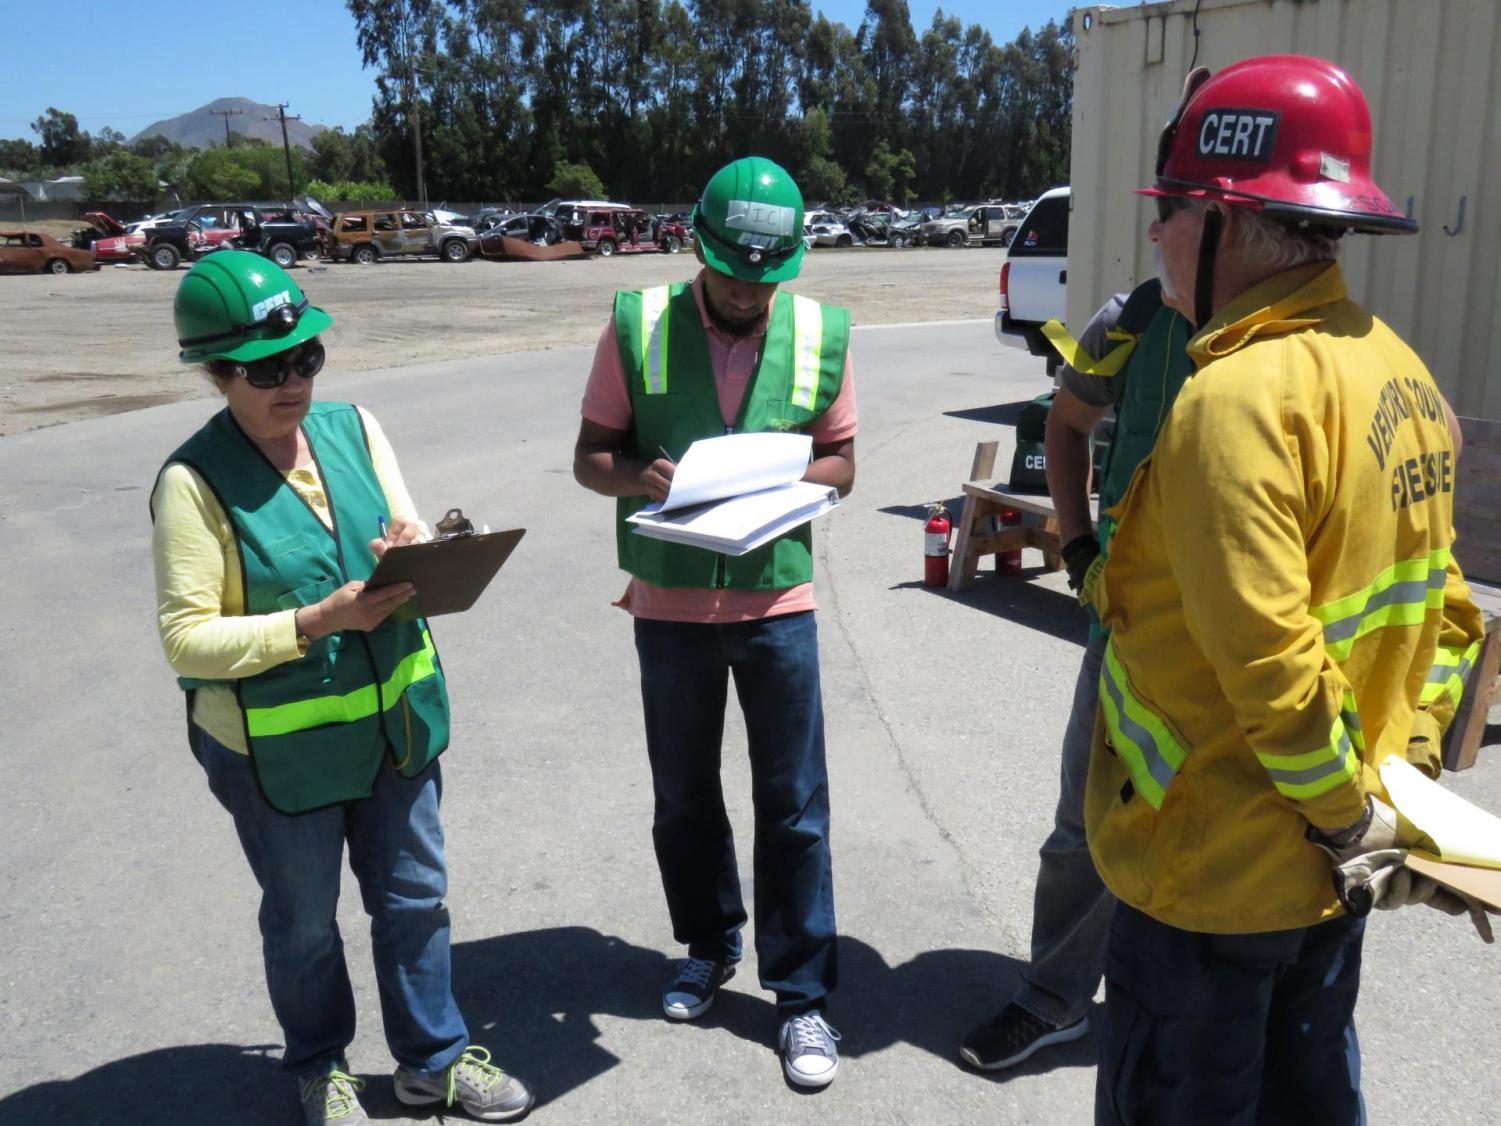 The Ventura County Fire Department has been training residents for 10 years to help prepare them for disasters through the CERT program. For more information about the program visit vcfd.org/cert